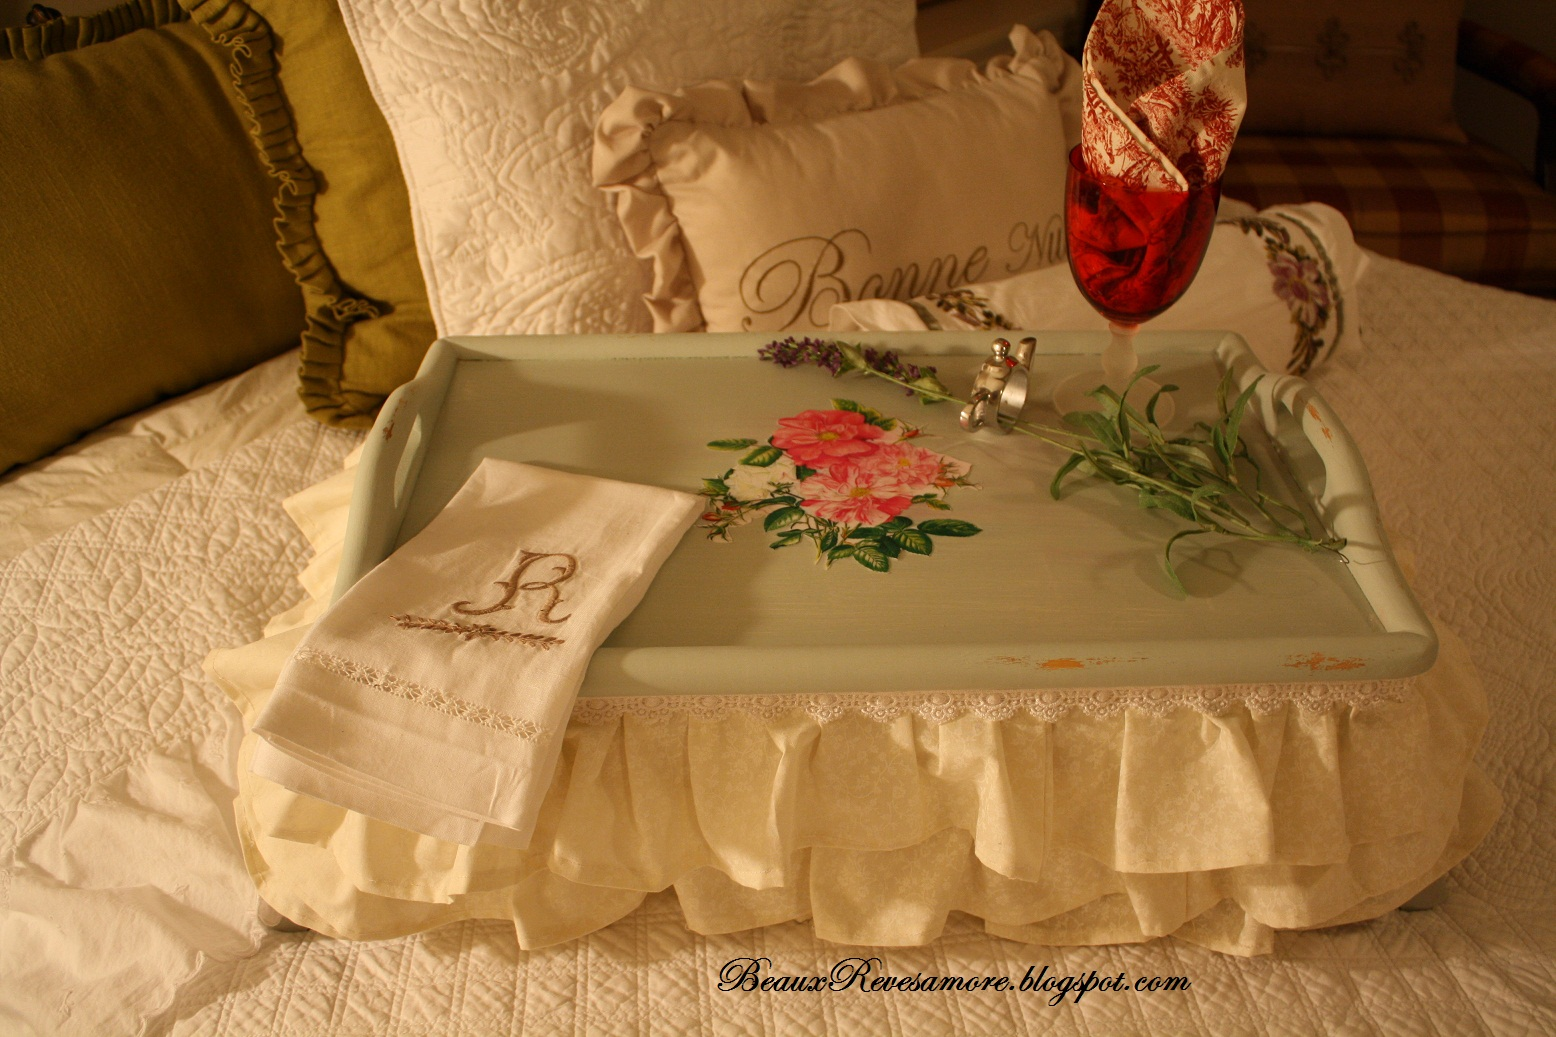 Beaux r 39 eves romantic breakfast in bed for How to buy a bed and breakfast